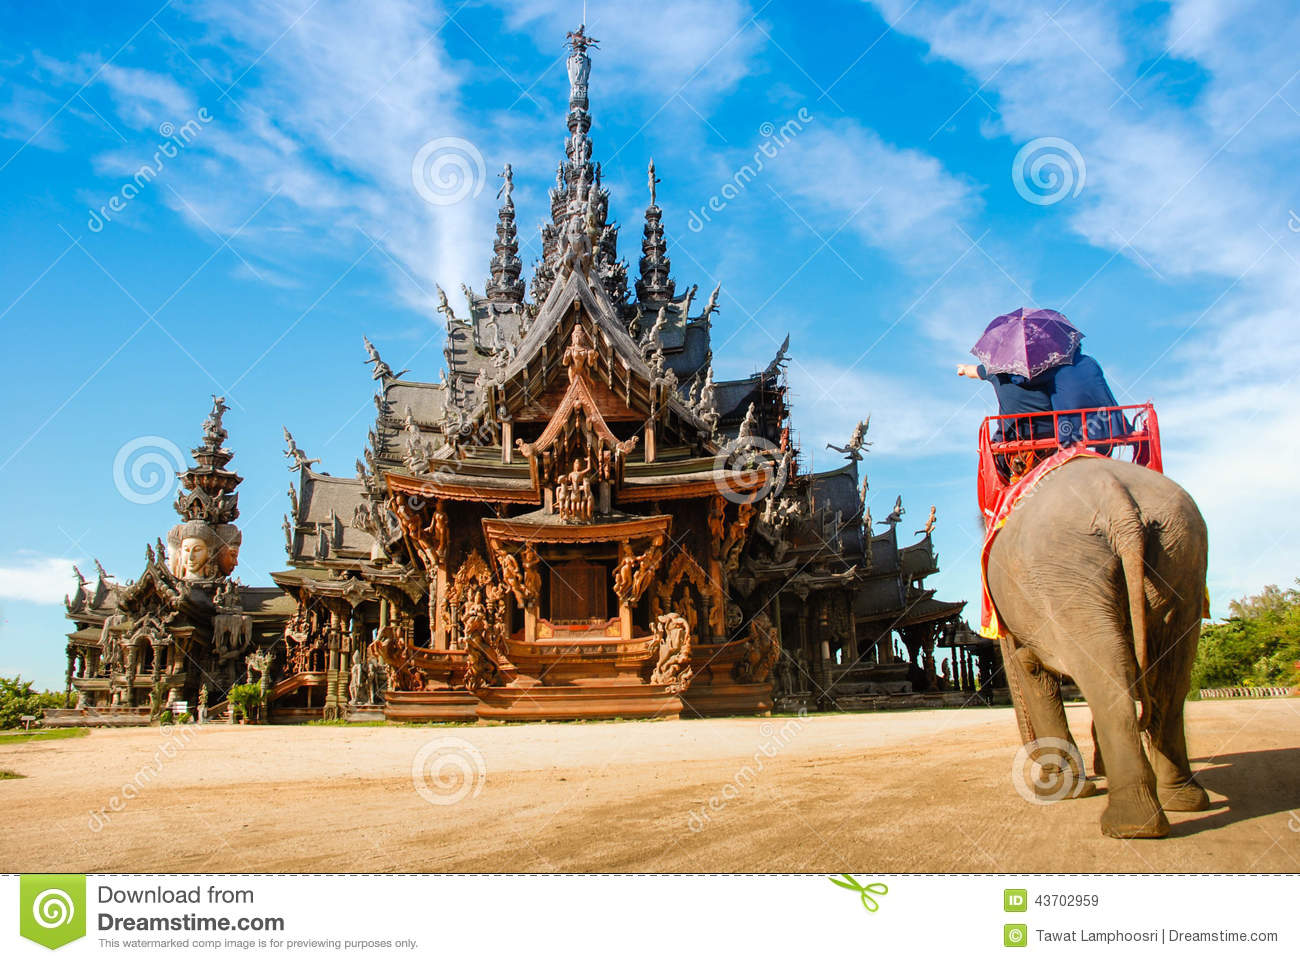 Pattaya, Thailand: Thai Temple Elephant Rides